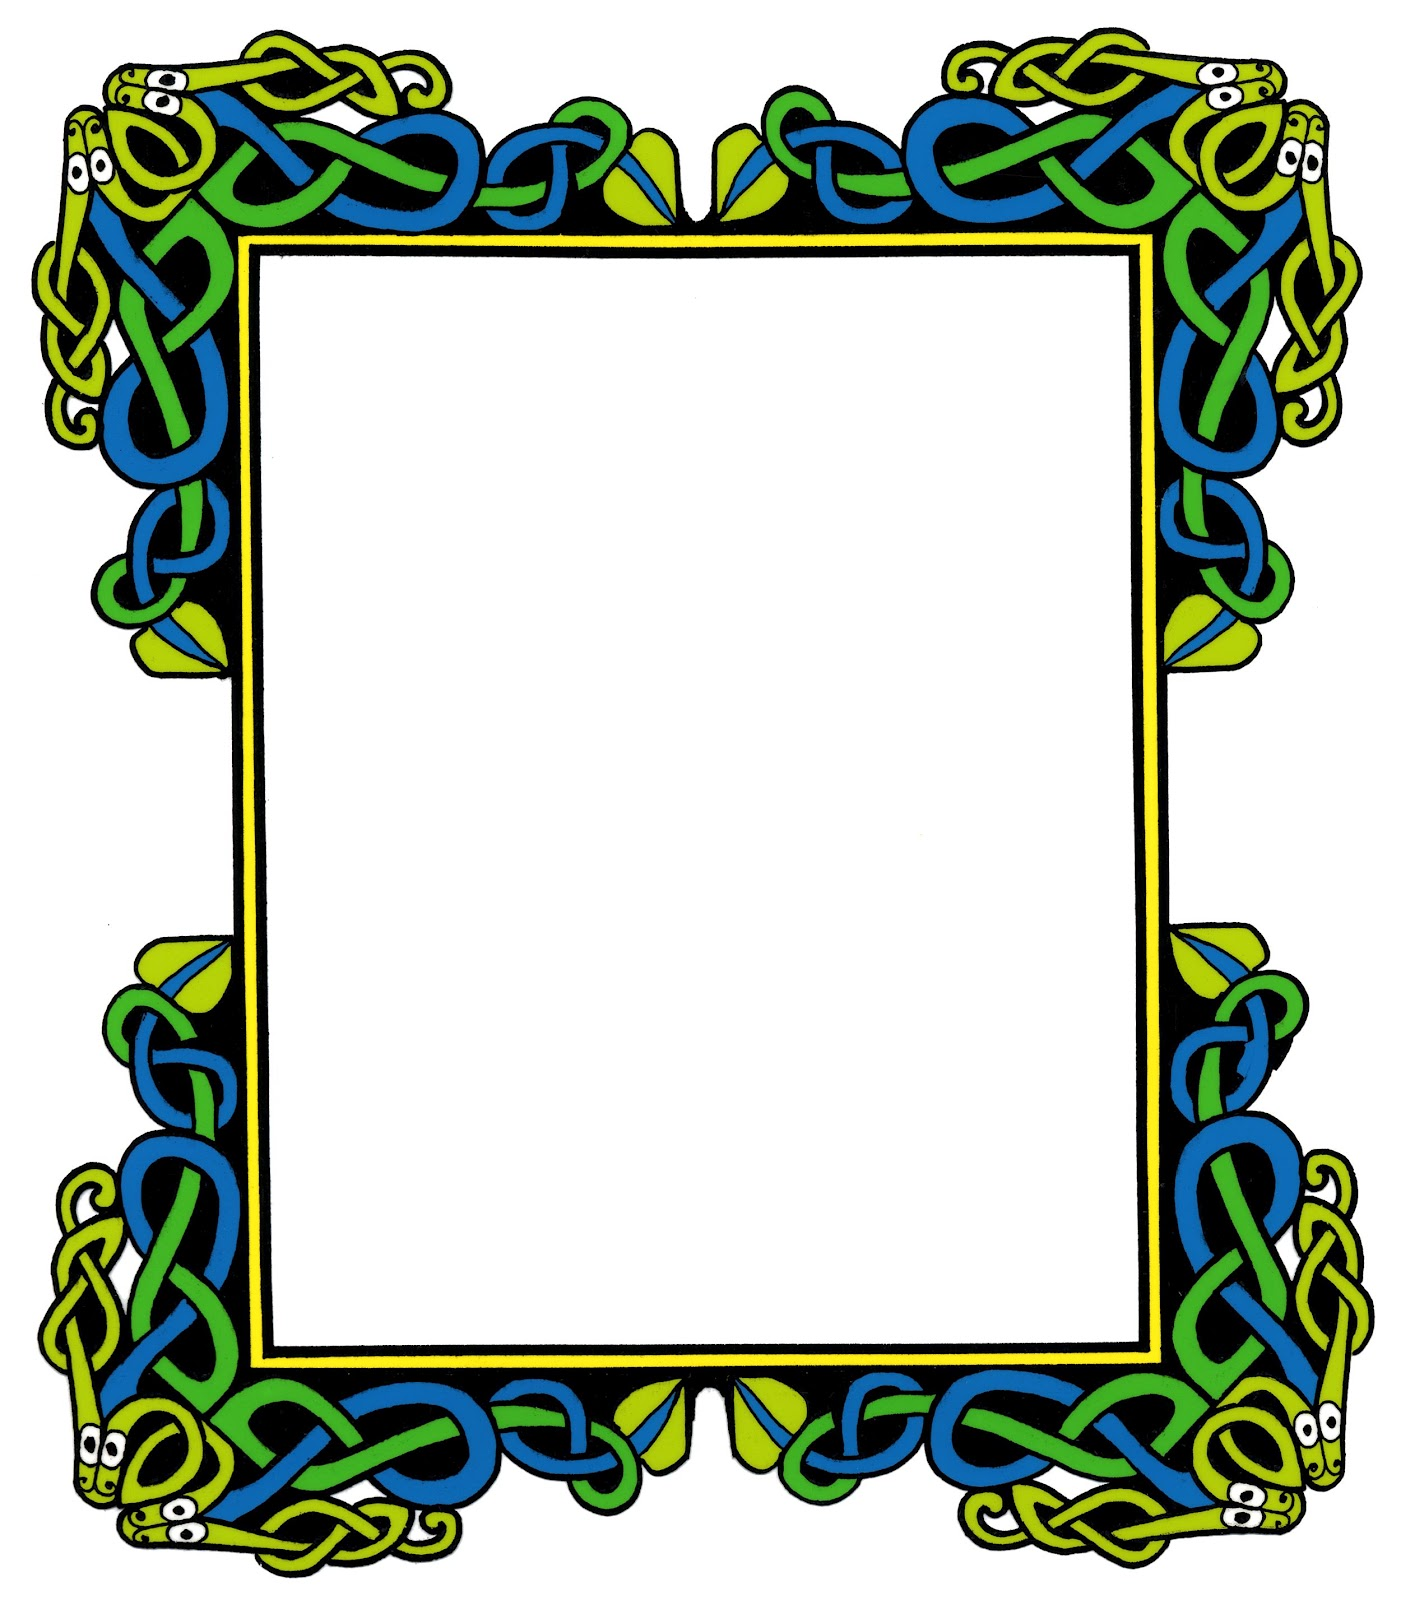 Celtic Page Borders - ClipArt Best